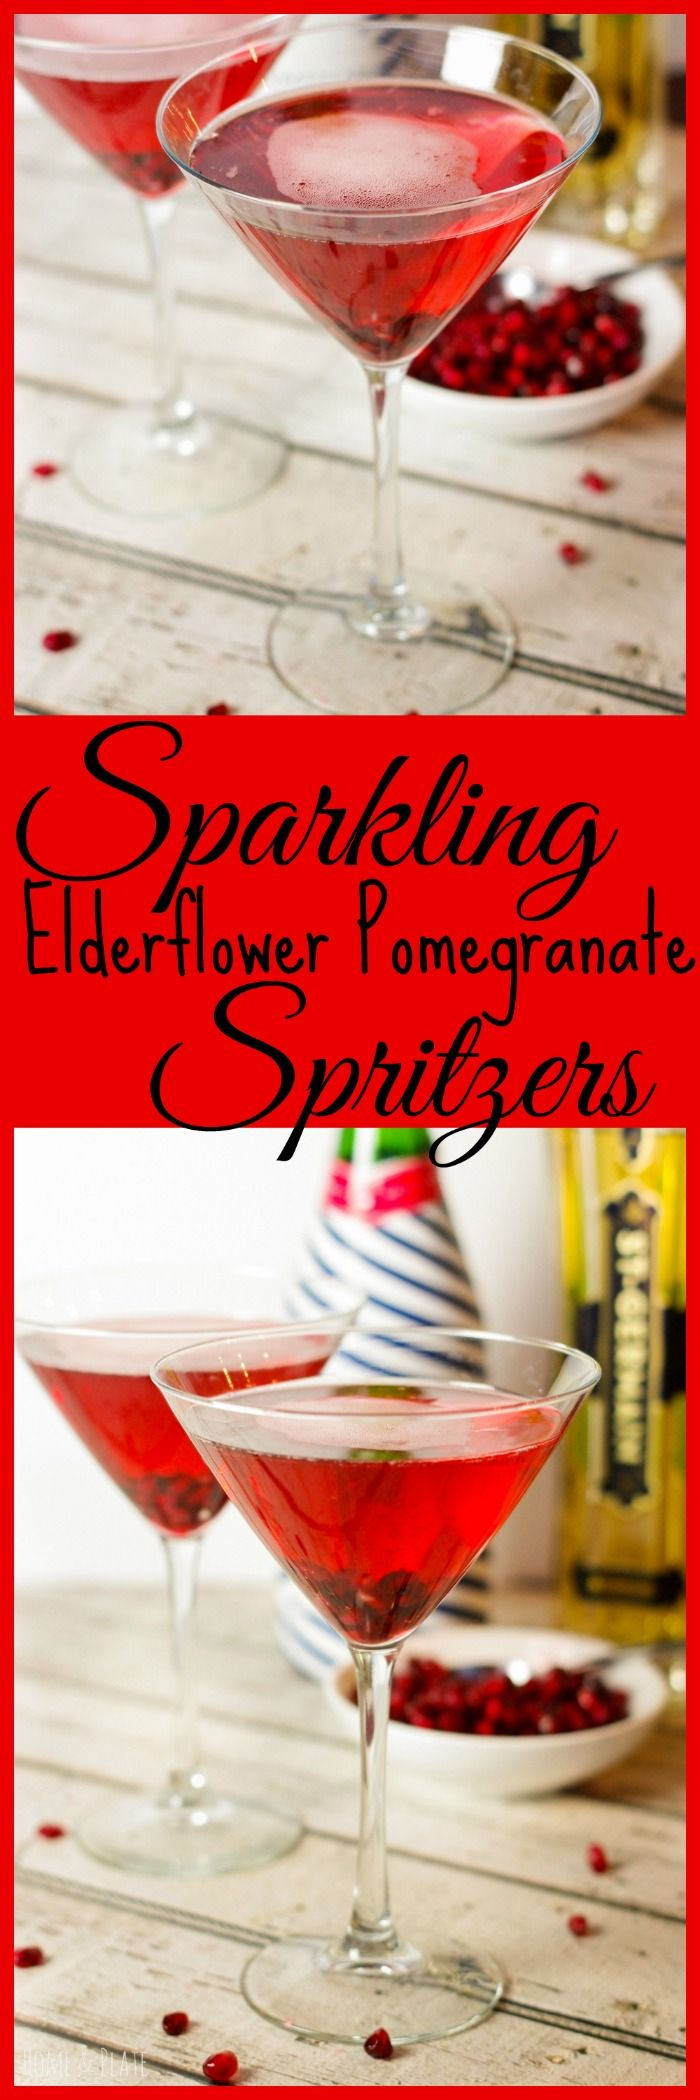 Sparkling Elderflower Pomegranate Spritzers   www.homeandplate.com   This cocktail is sweet and tart and is the perfect option for any festive gathering including Christmas Day and your New Year's eve party.